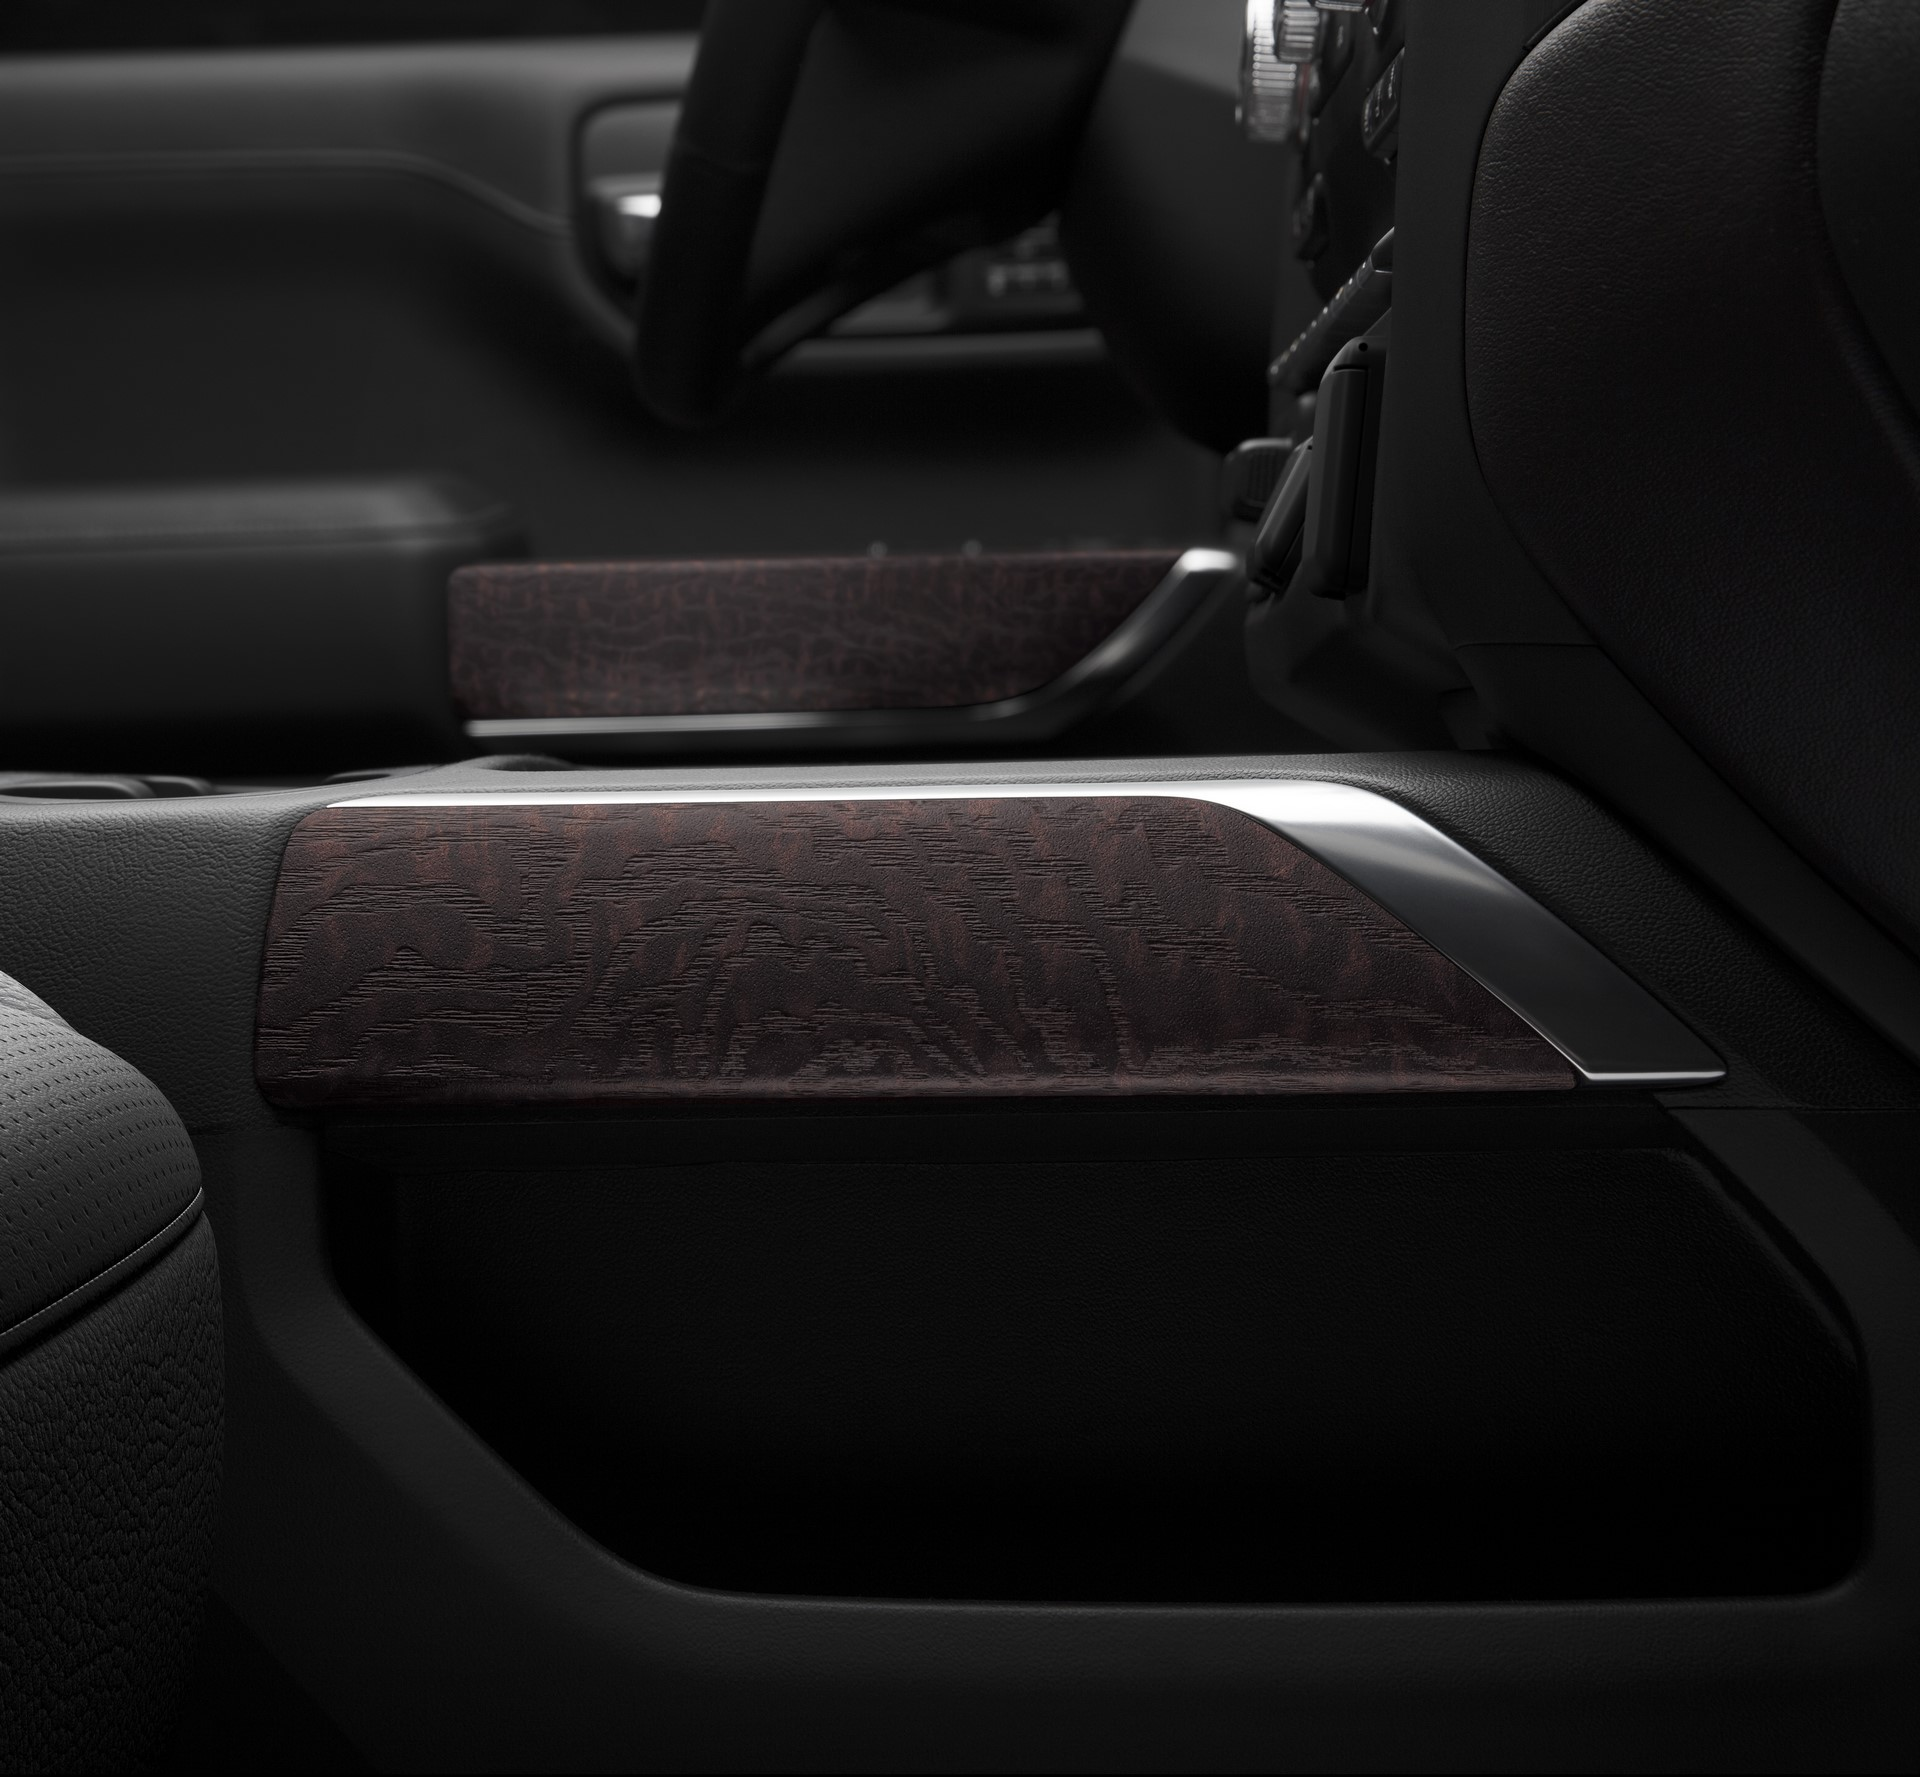 2019 GMC Sierra Denali authentic open-pore wood trim